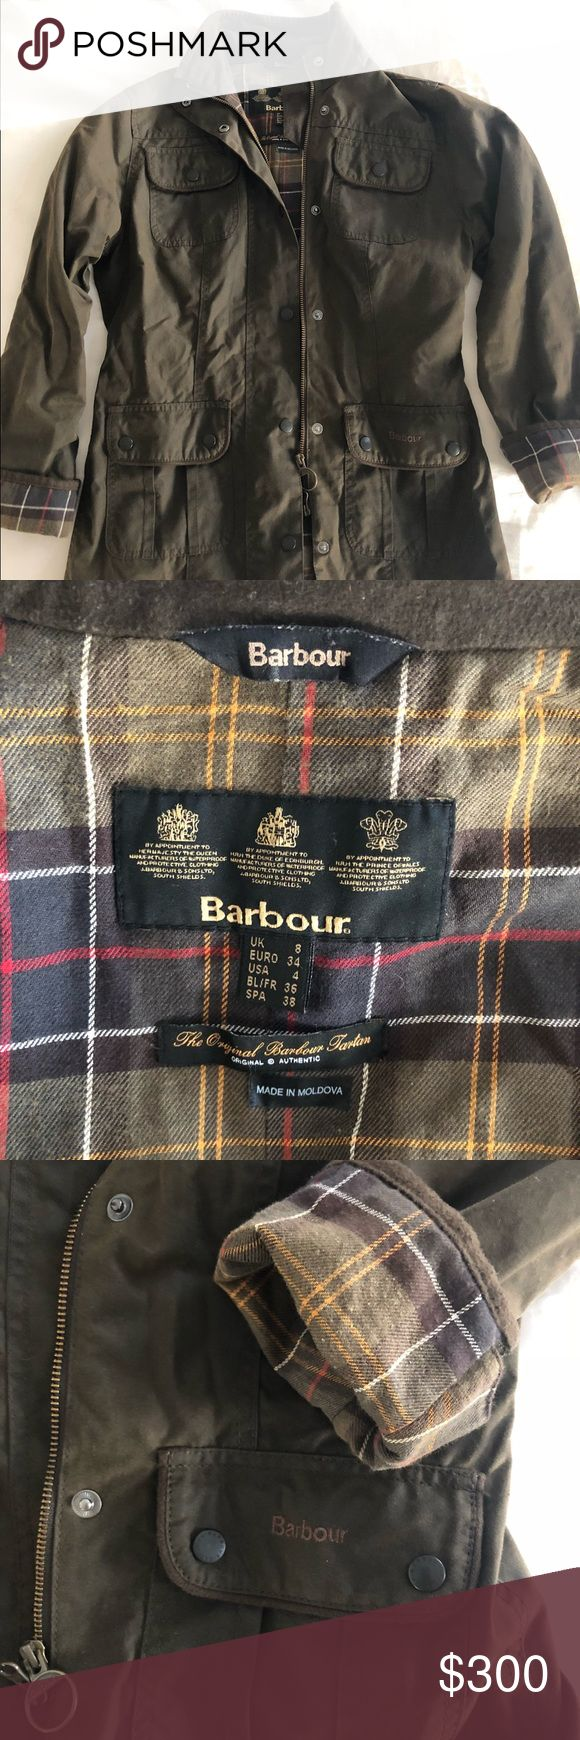 Spotted while shopping on Poshmark: Women's Barbour Wax Jacket - Olive/Brown! #poshmark #fashion #shopping #style #Barbour #Jackets & Blazers